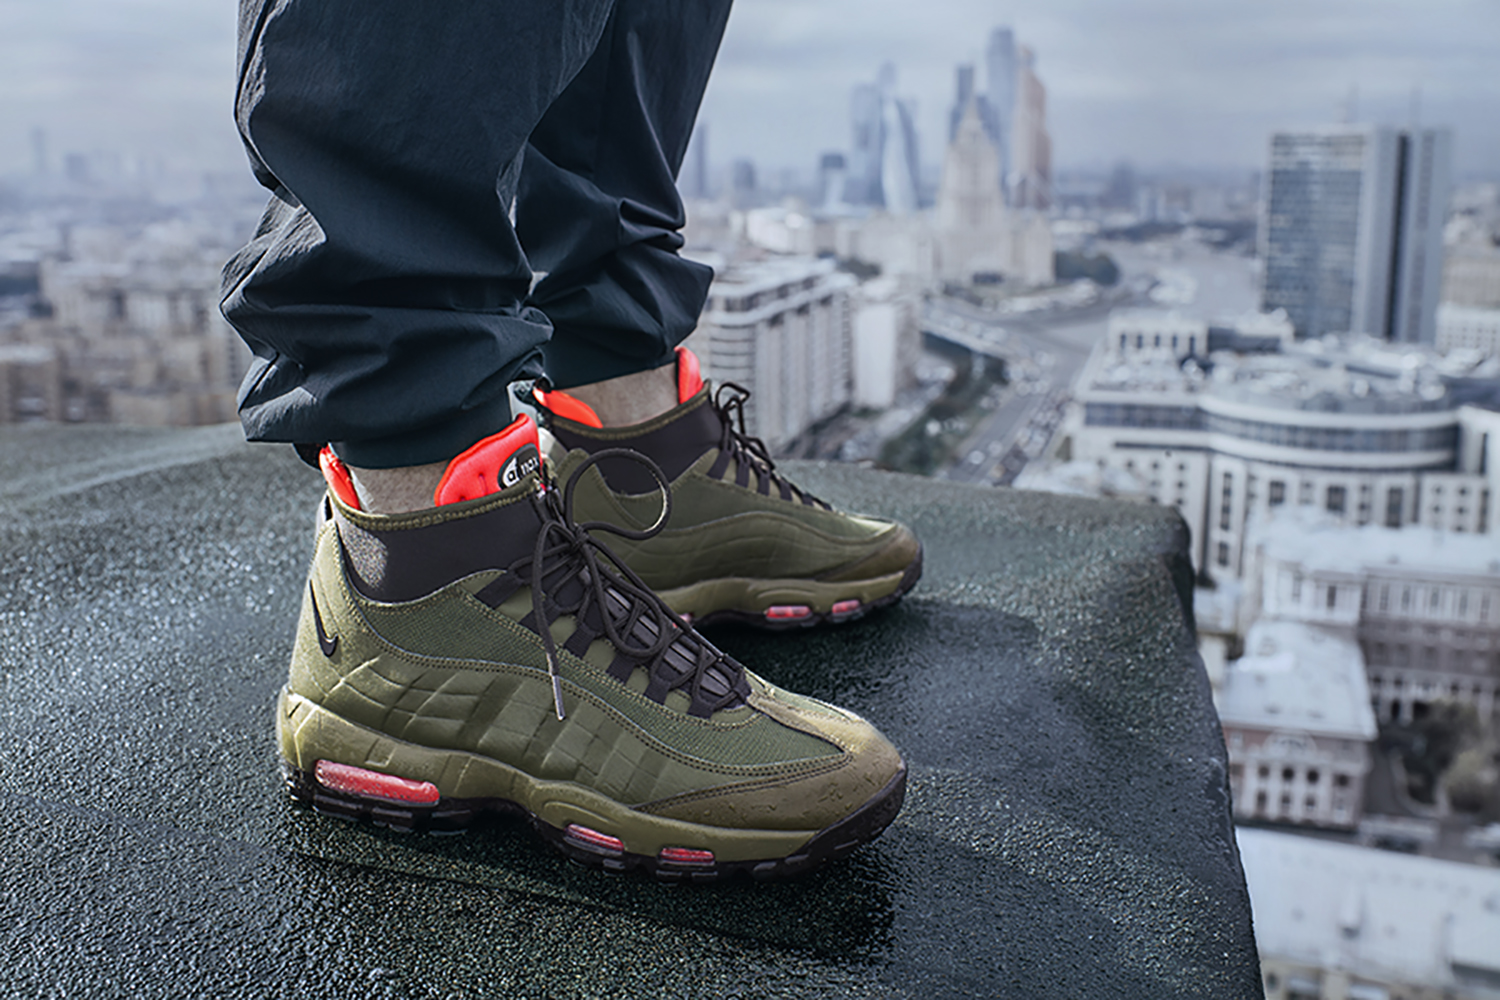 Nike Sneakerboots Fall/Winter 2015 Collection